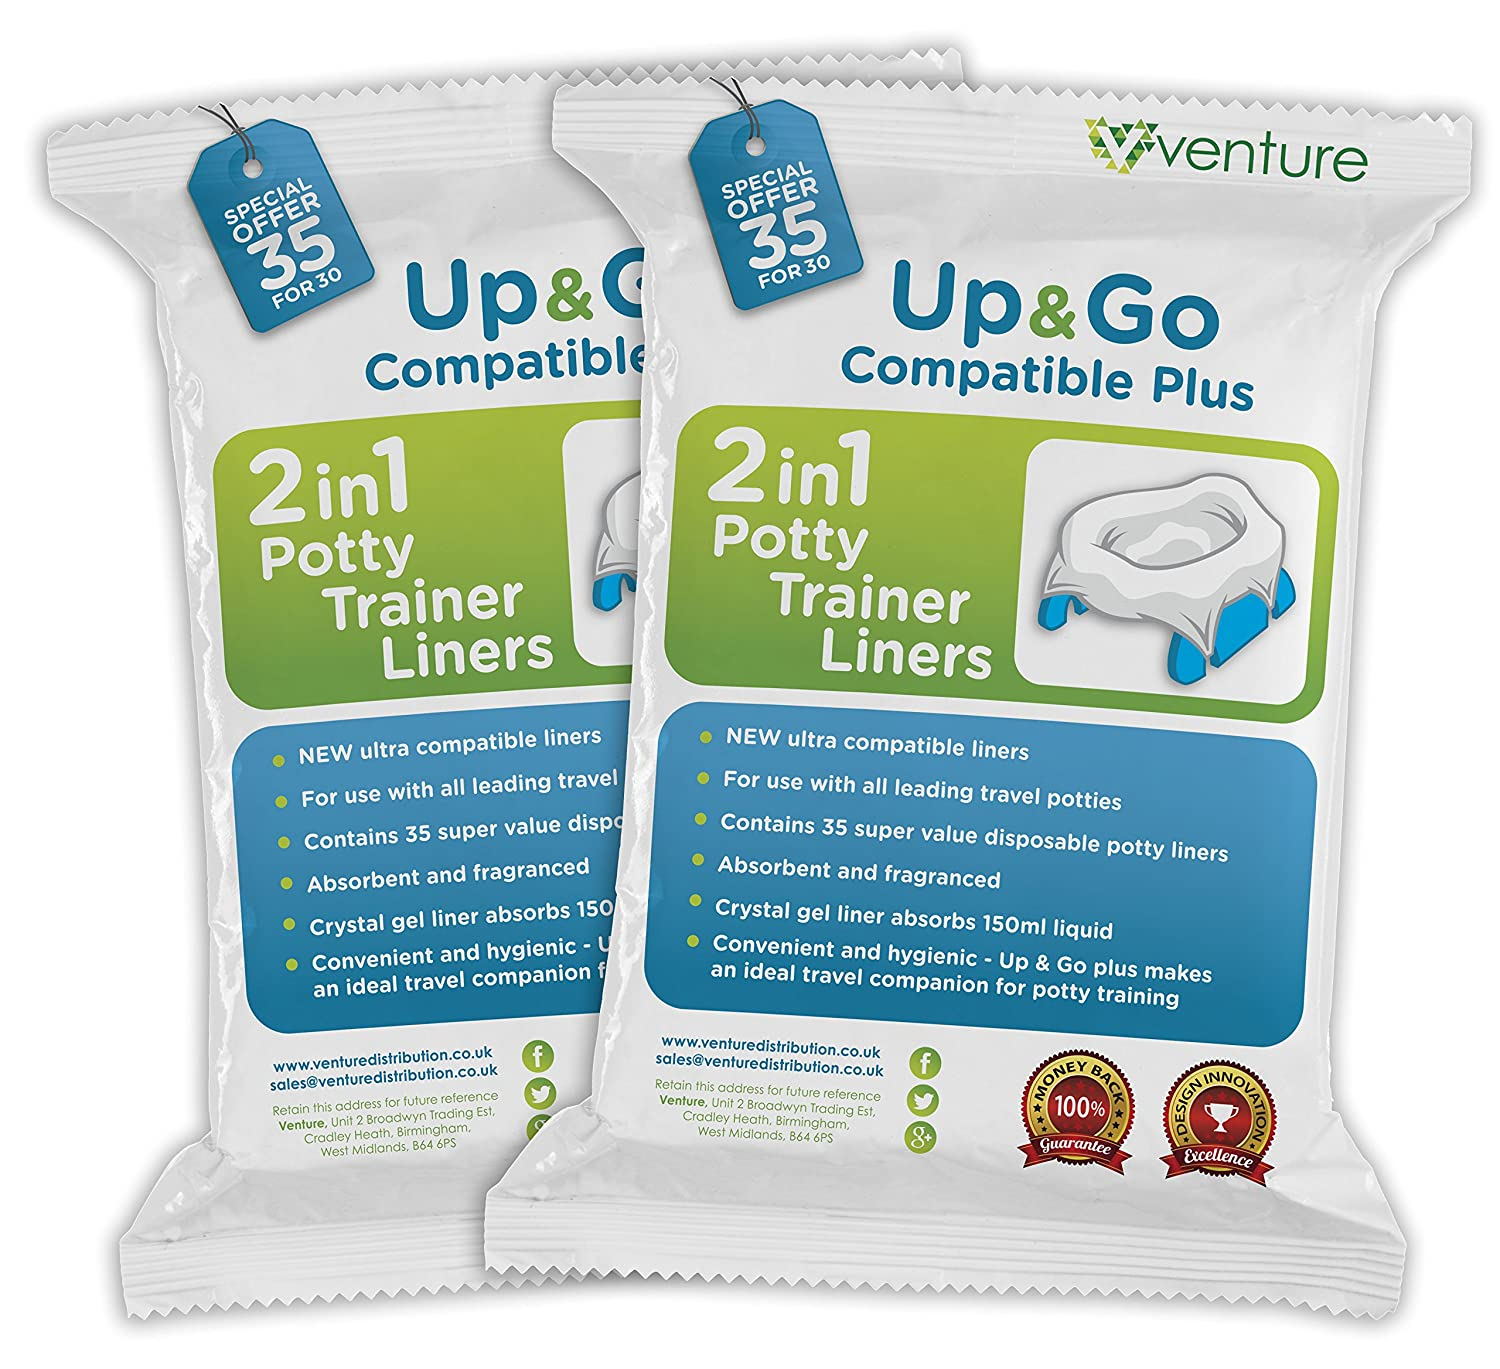 **NEW RELEASE** 70 Pack | Pote Plus 100% Compatible Travel Potty Liner | Get 70 Up & Go Travel Liners For The Price Of 60 Venture UP&GO | 70